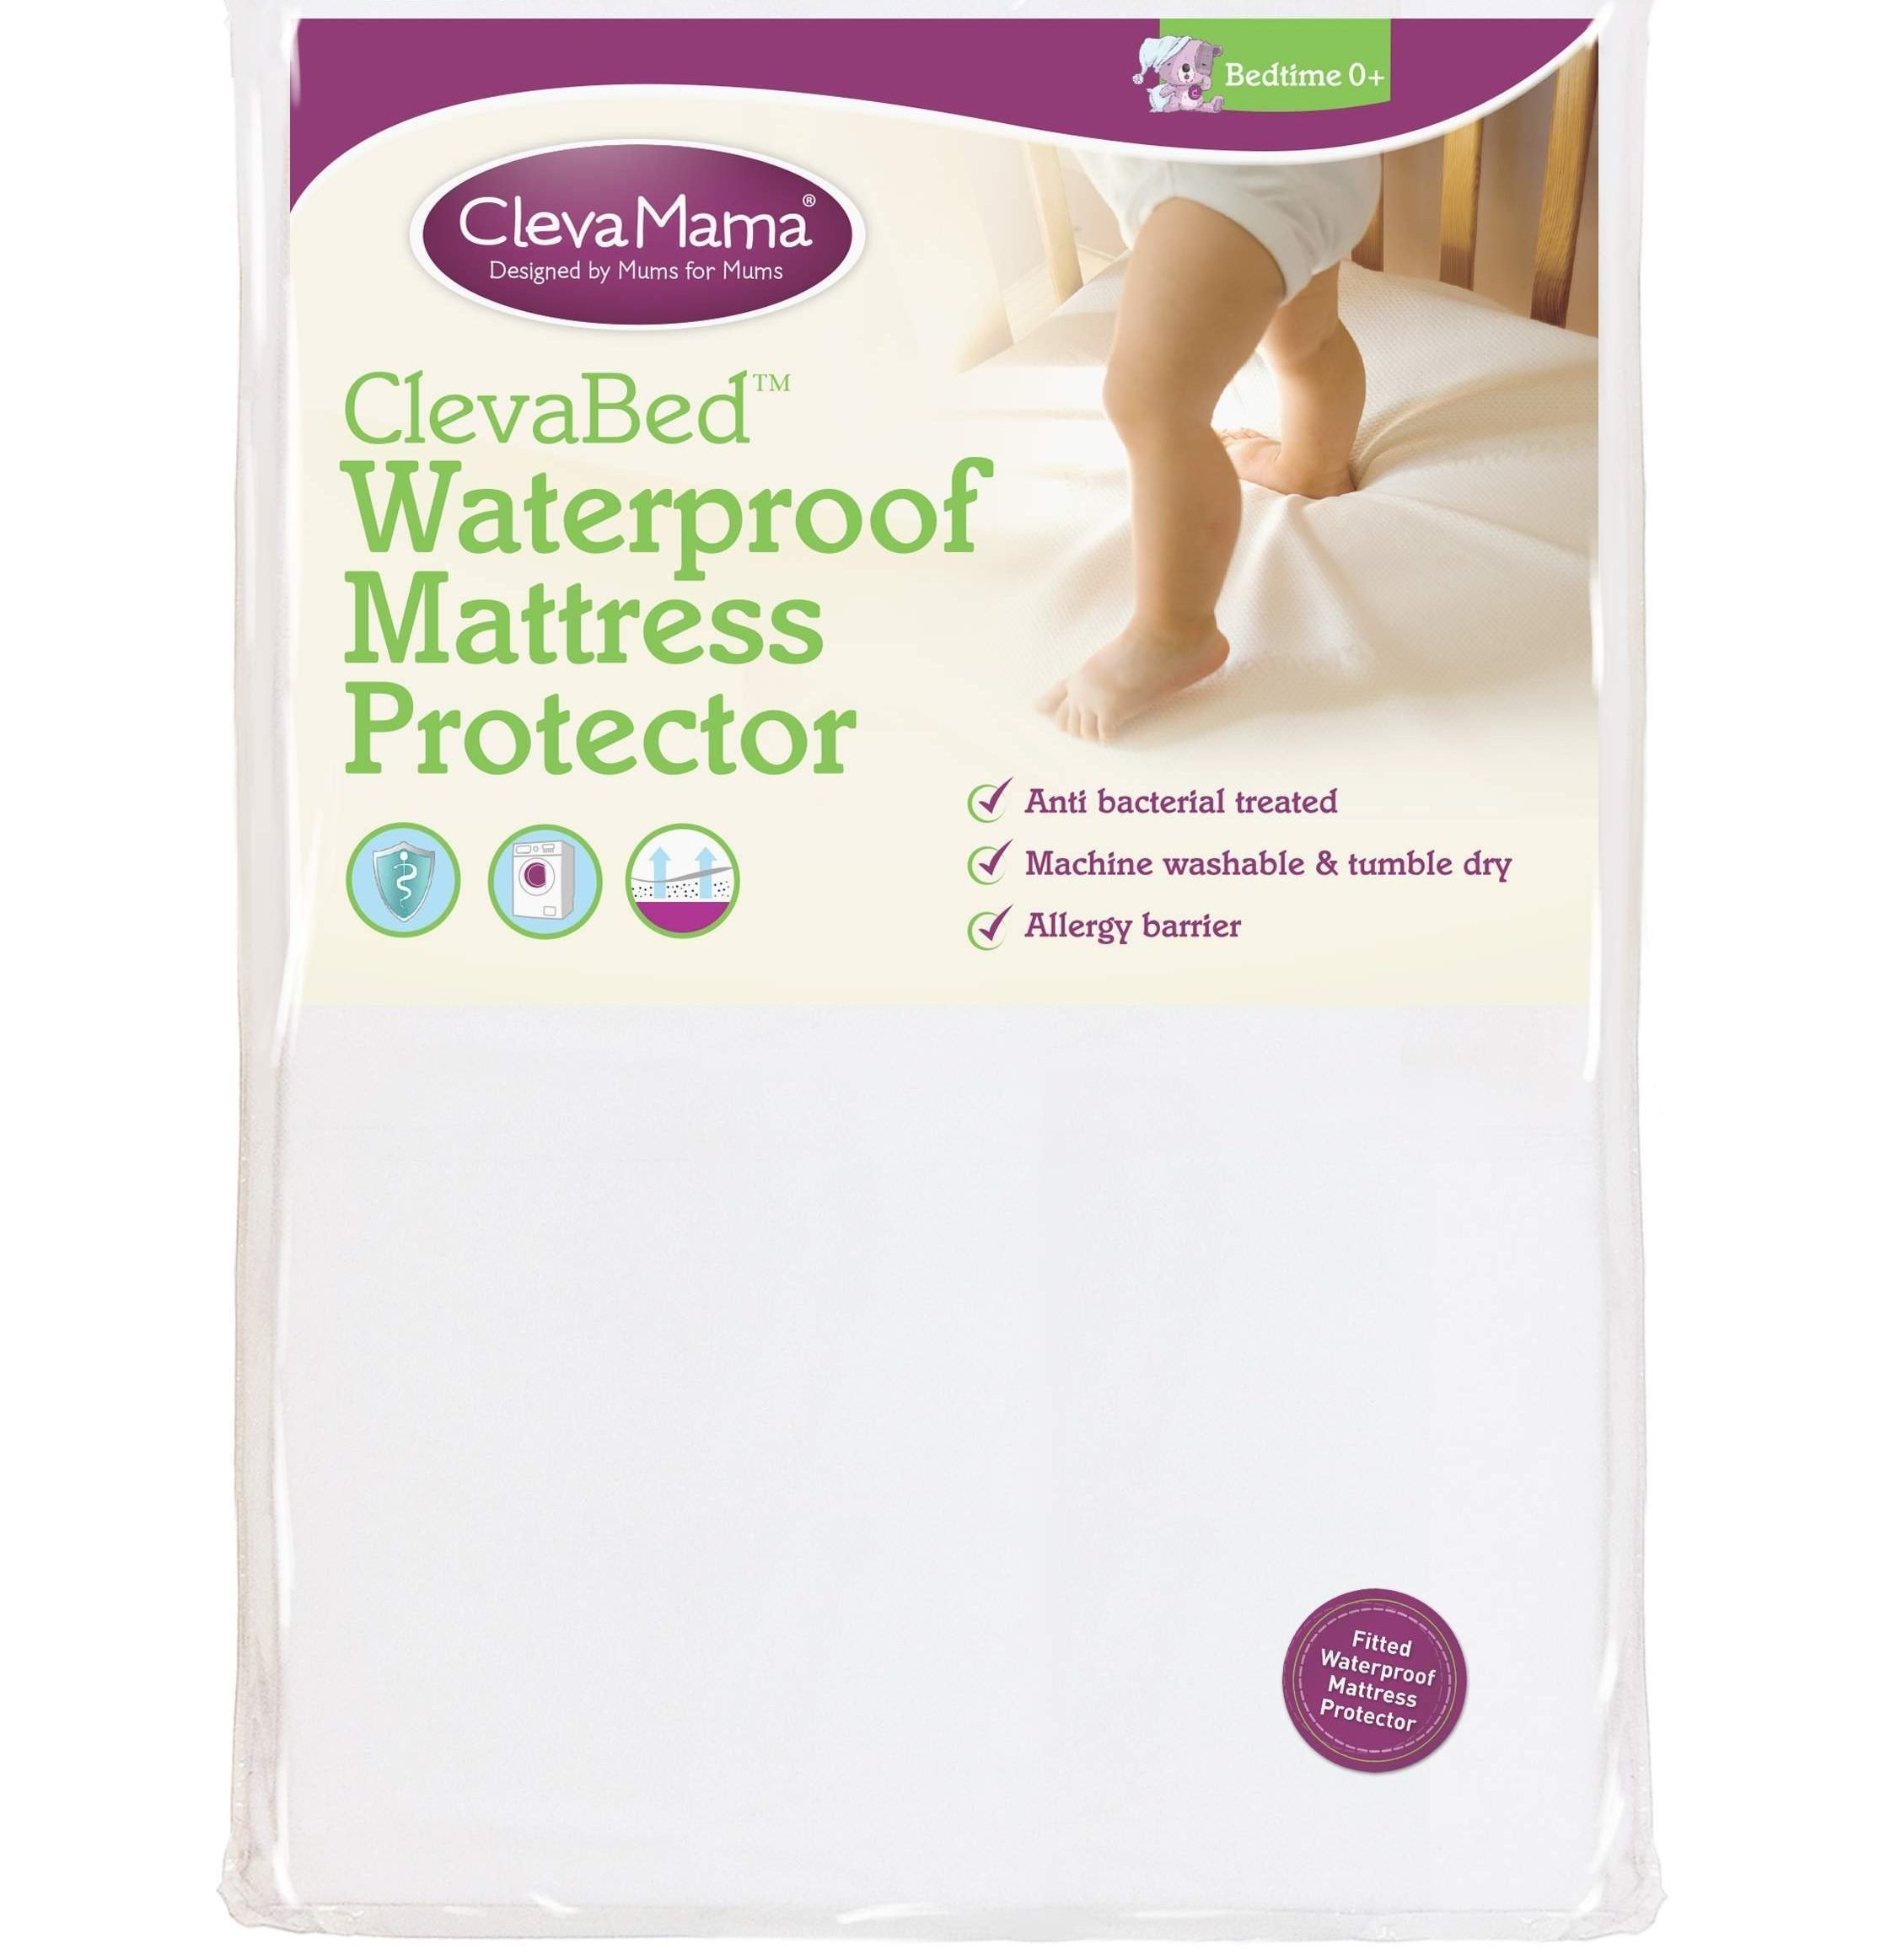 ClevaMama ClevaBed Waterproof Mattress Protector